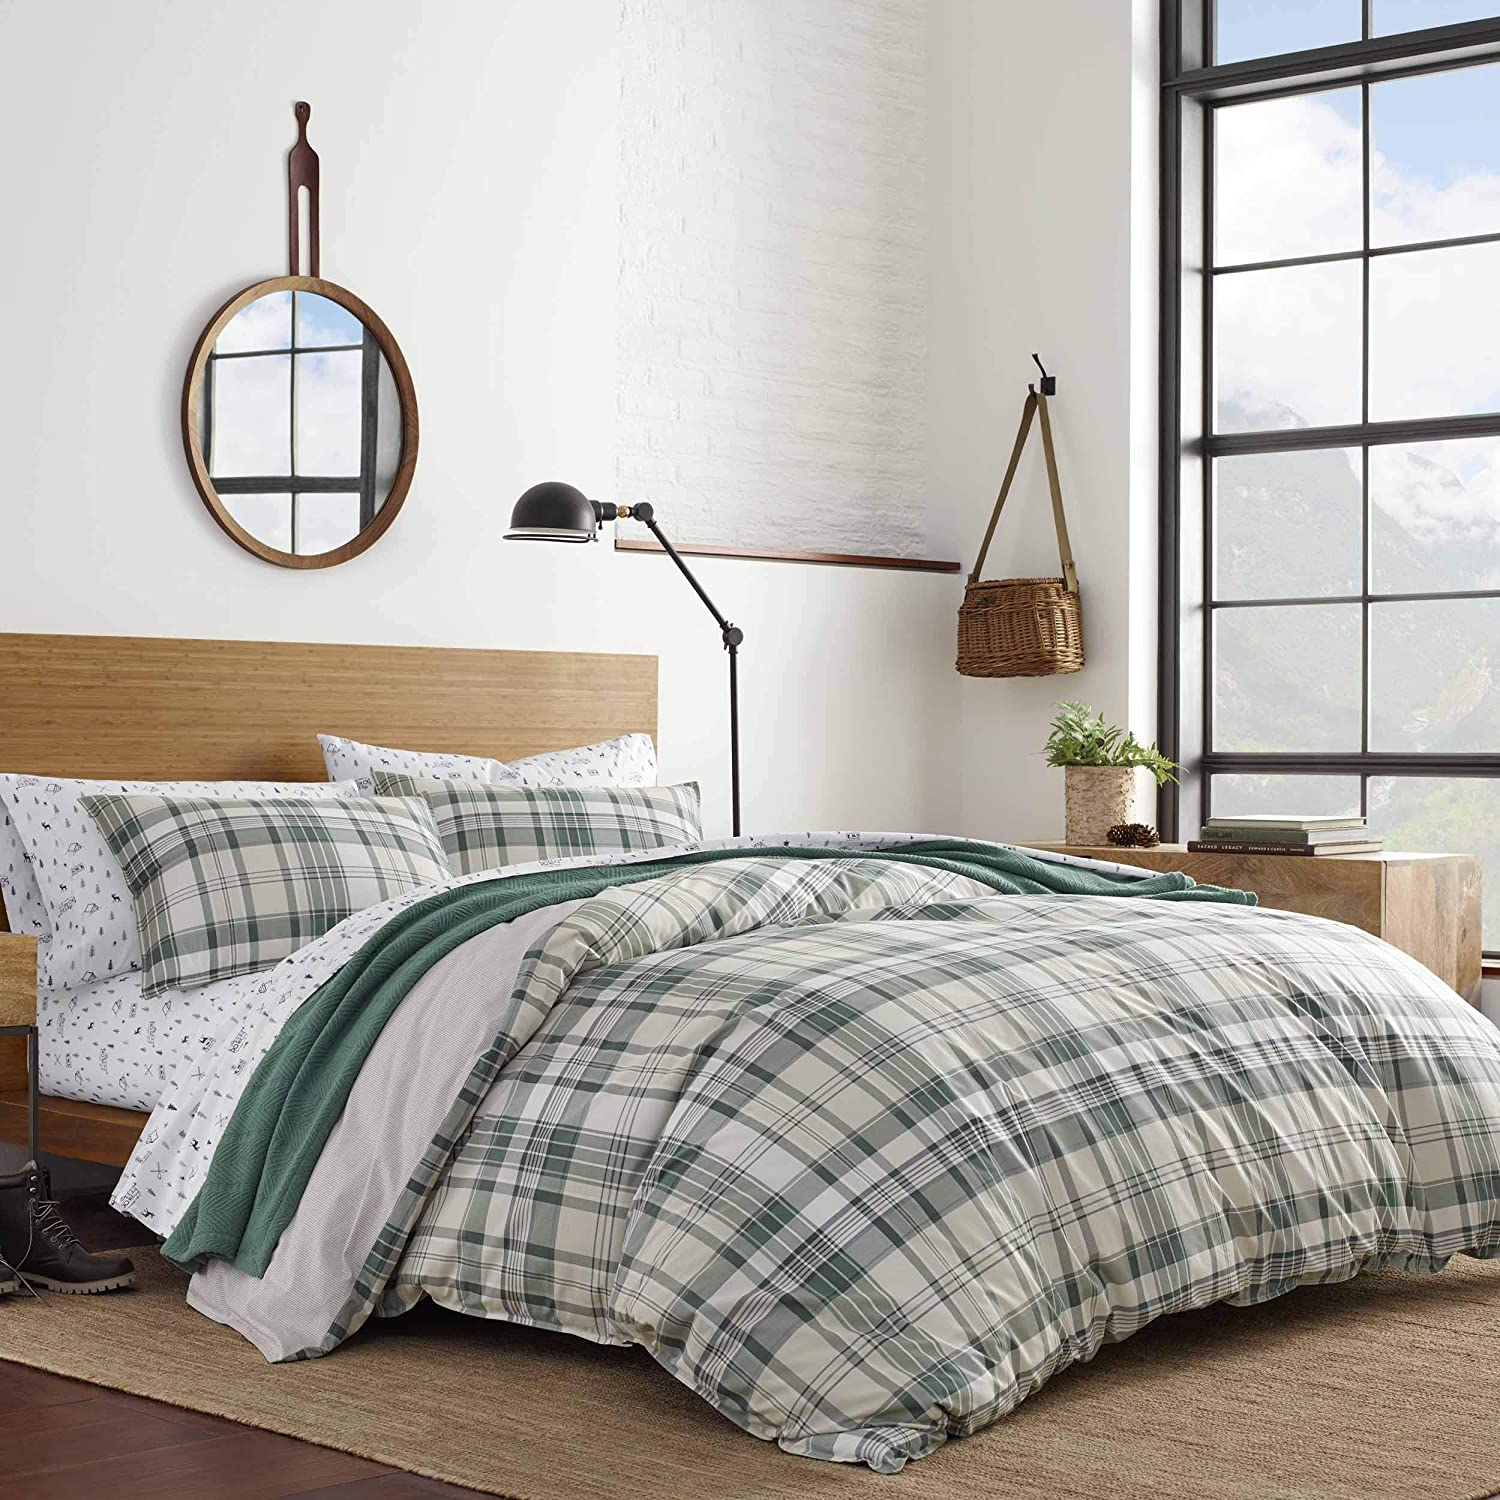 Eddie Bauer Home | Timbers Collection | 100% Cotton Soft & Cozy Premium Quality Plaid Duvet Cover Matching Shams, 3-Piece Bedding Set, Machine Washable, King, Evergreen